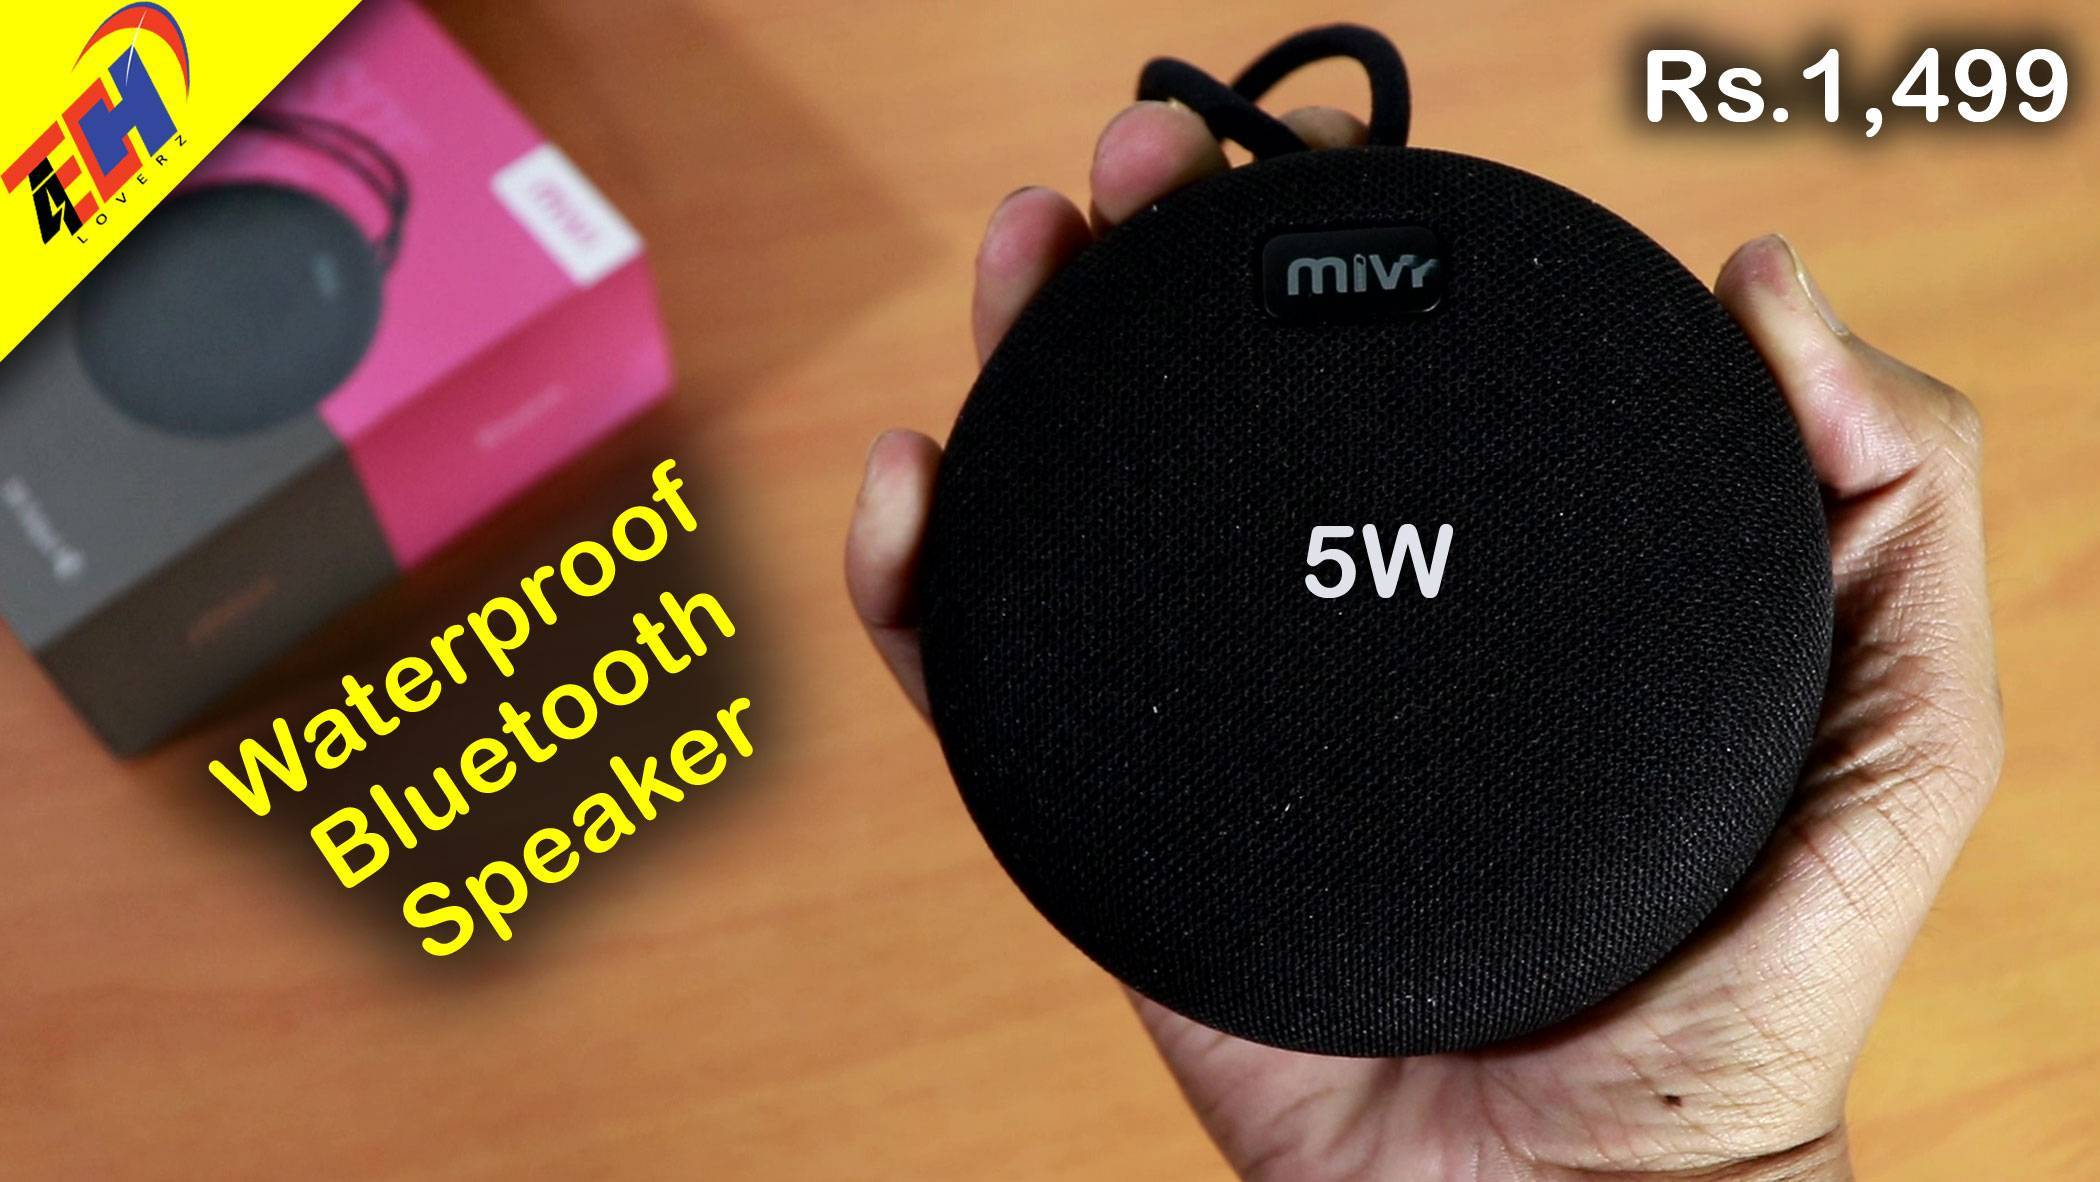 Mivi Roam Review: Better than JBL Go? Best Bluetooth Speaker under 1500?